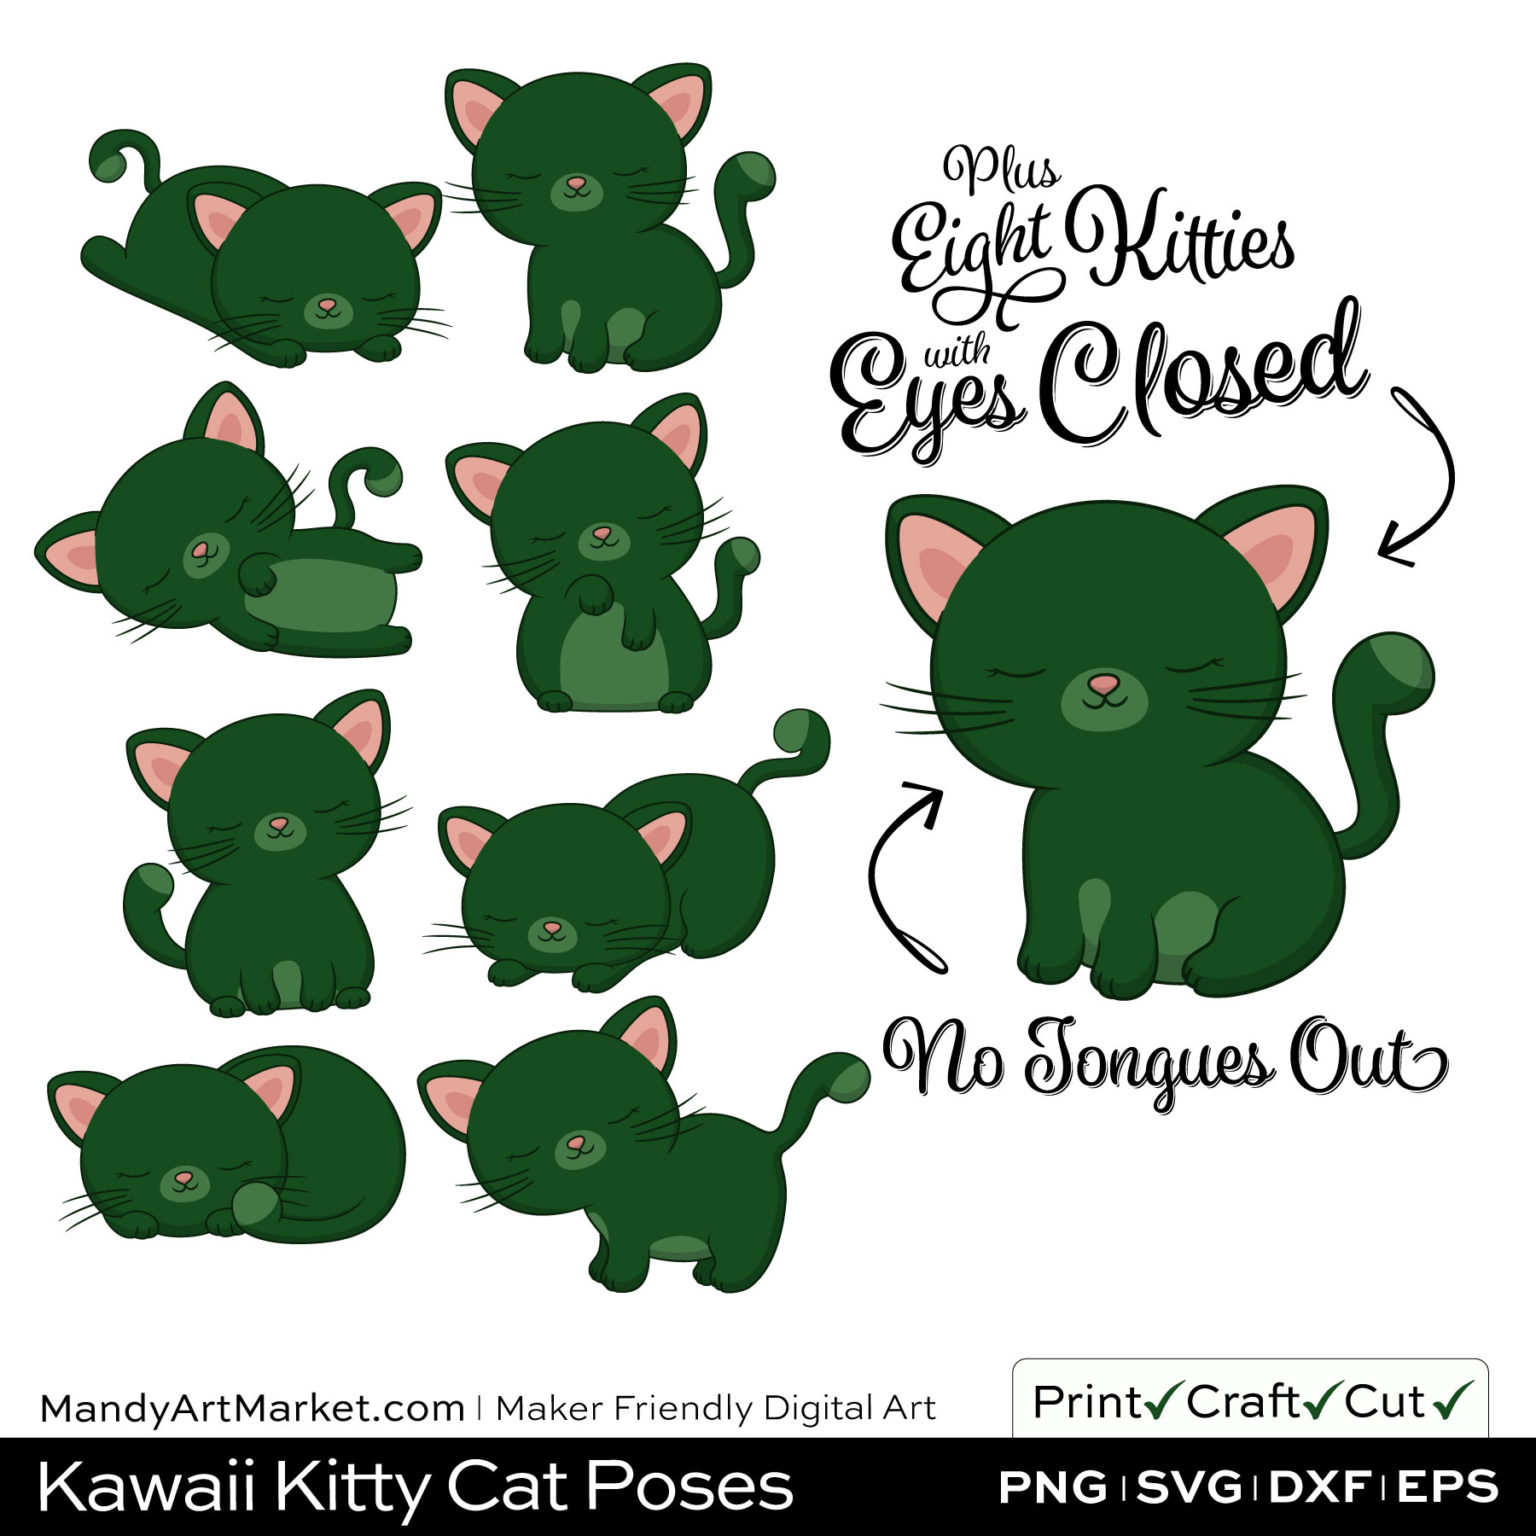 Forest Green Kawaii Kitty Cat Poses Clipart PNGs Included in Download